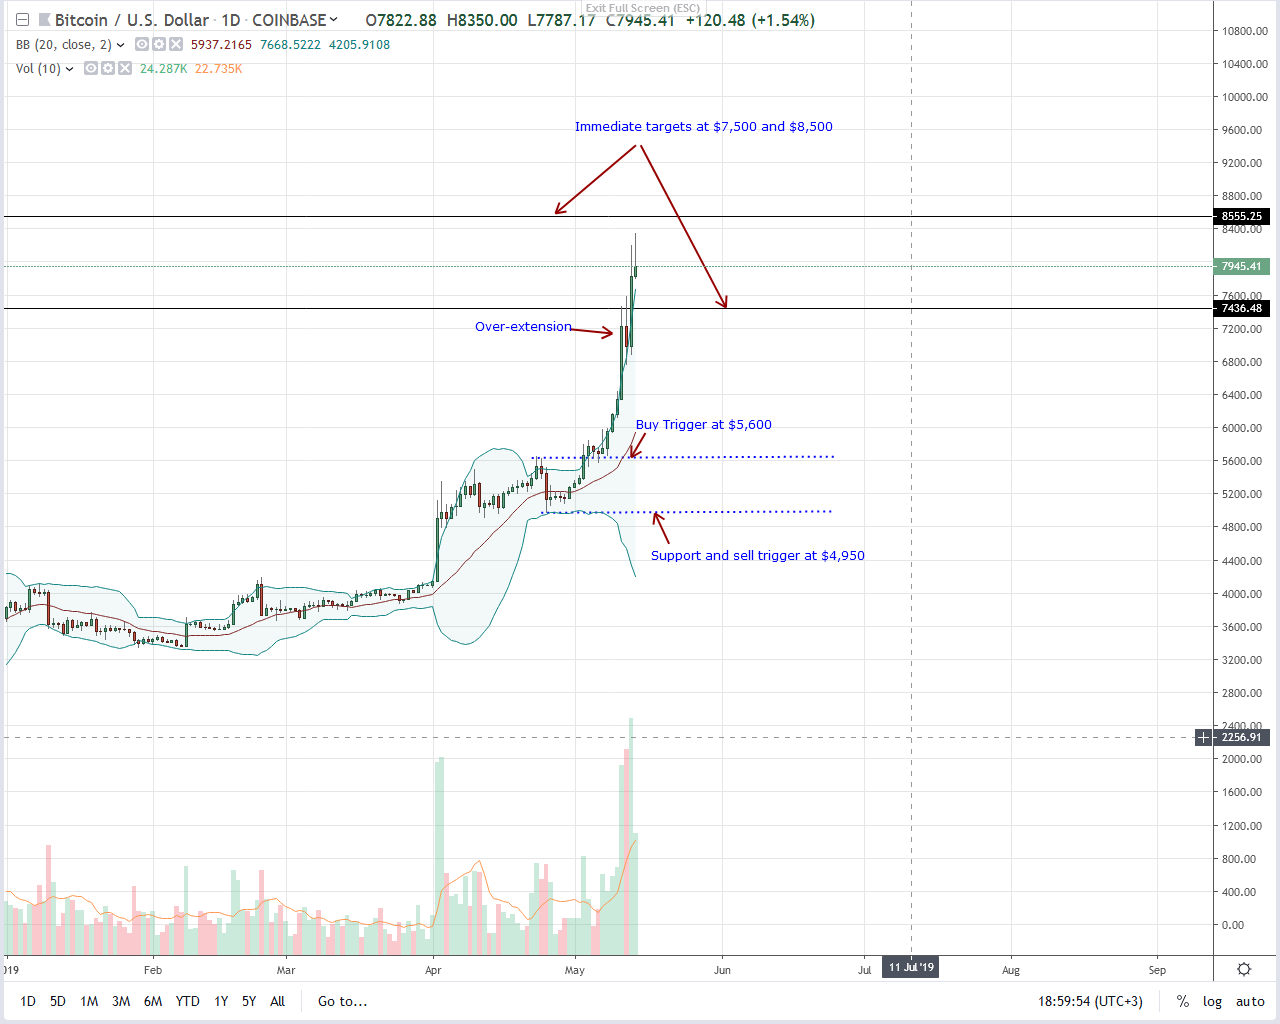 Bitcoin (BTC) up $40.8 Percent at 10-month Highs, Peaks?